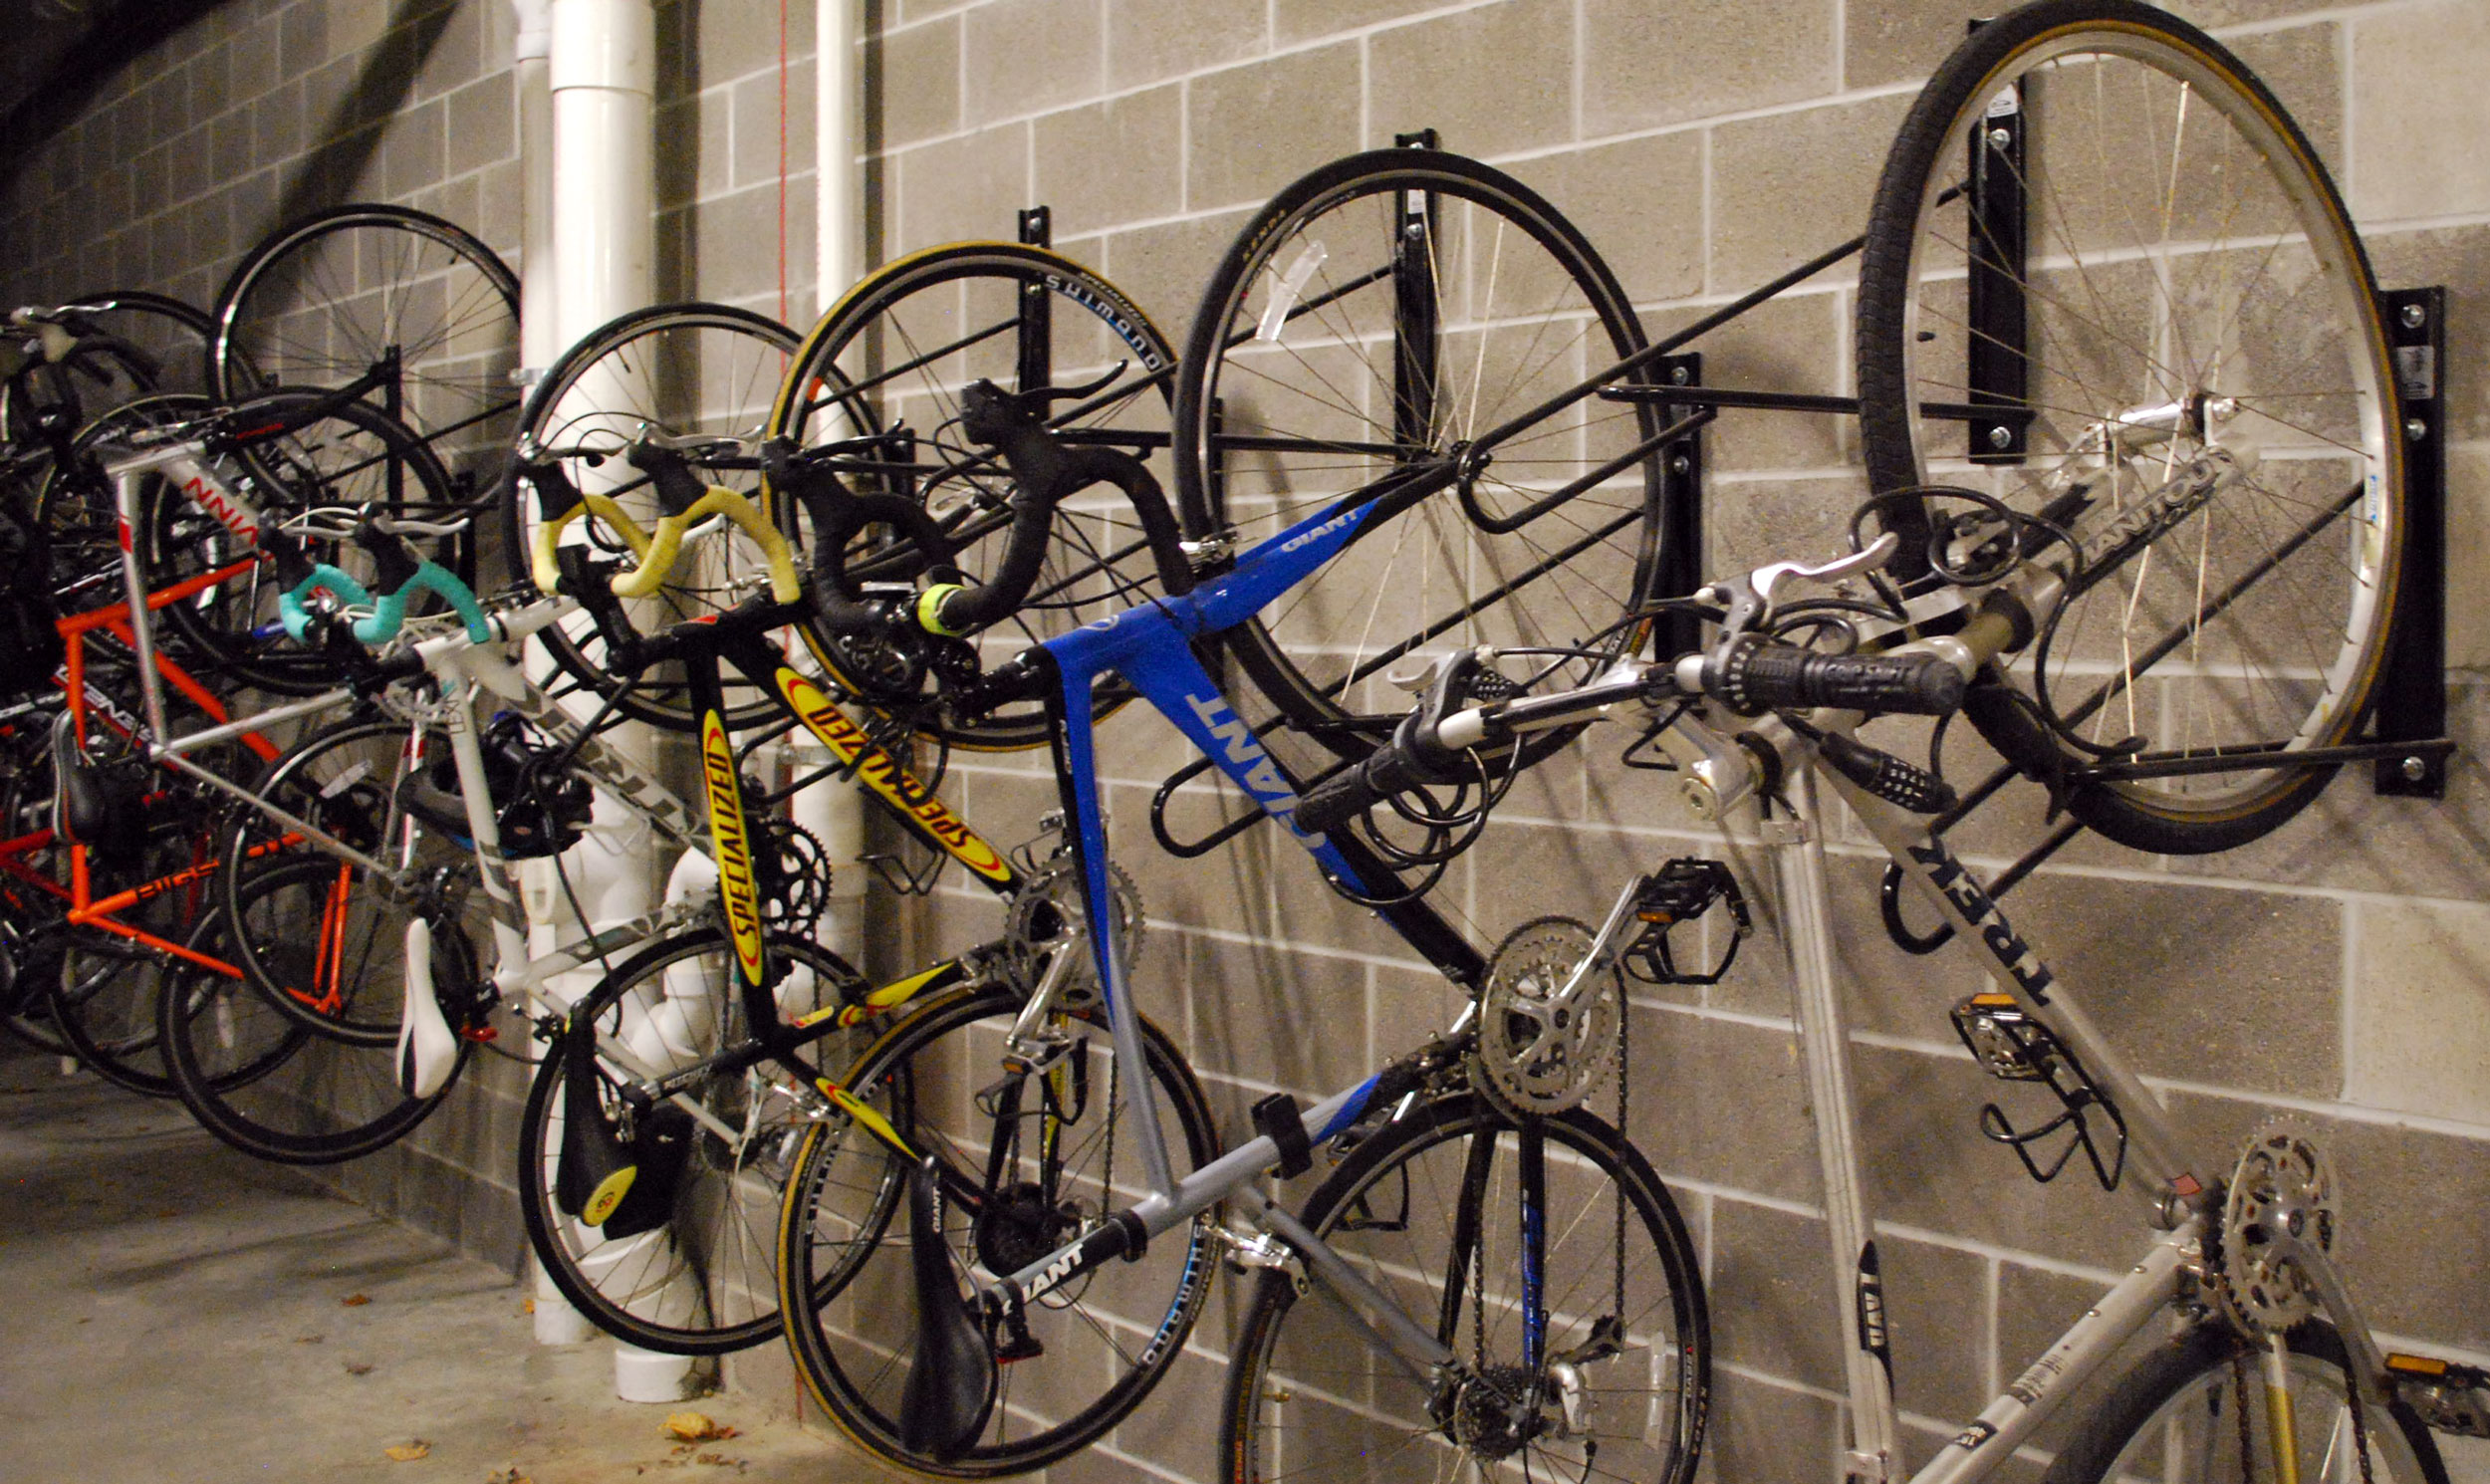 Madrax_Vertical_Bike_Rack_Install